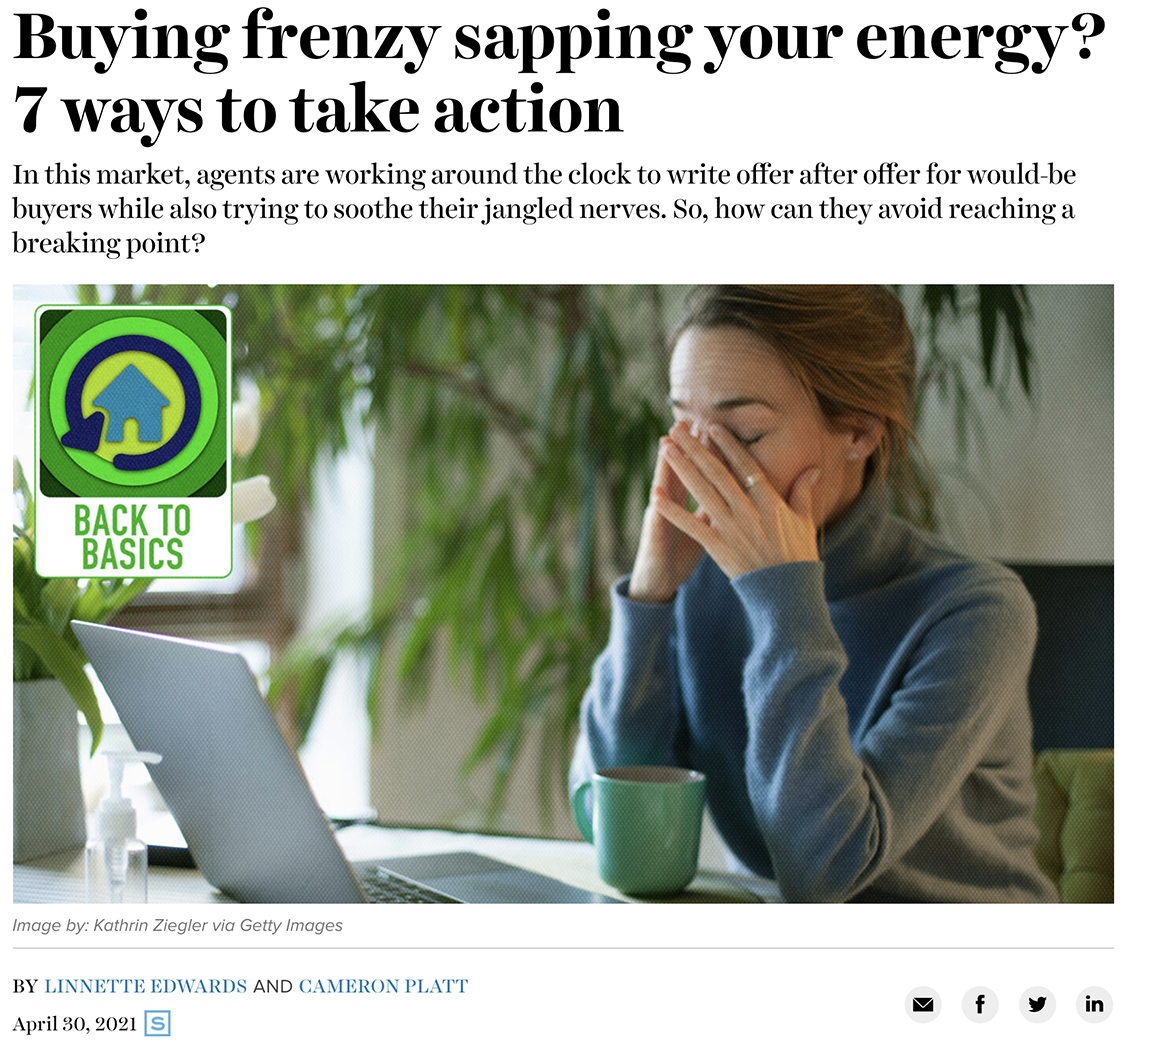 Buying frenzy sapping your energy? 7 ways to take action